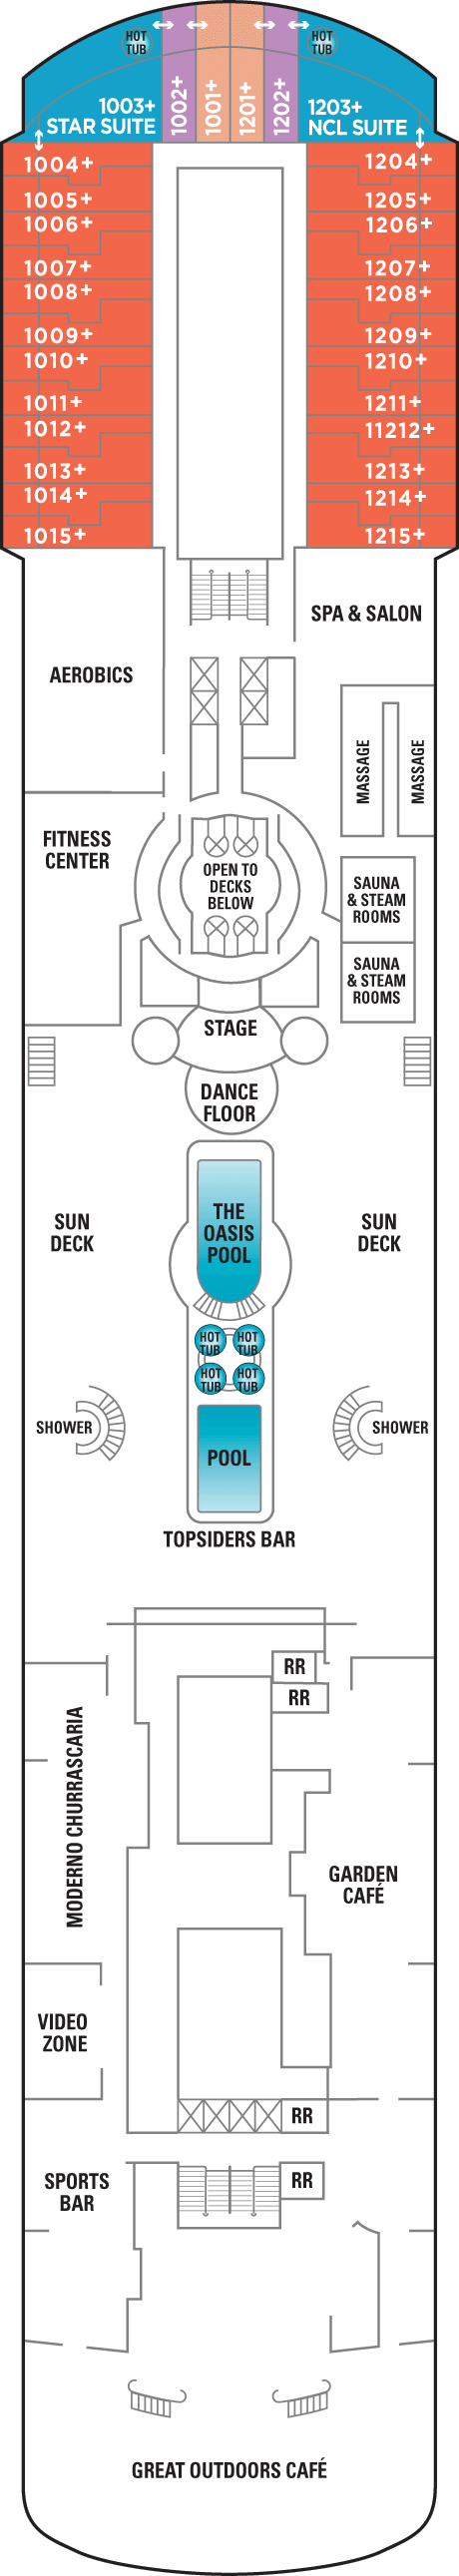 Norwegian Sun Pool Deck layout